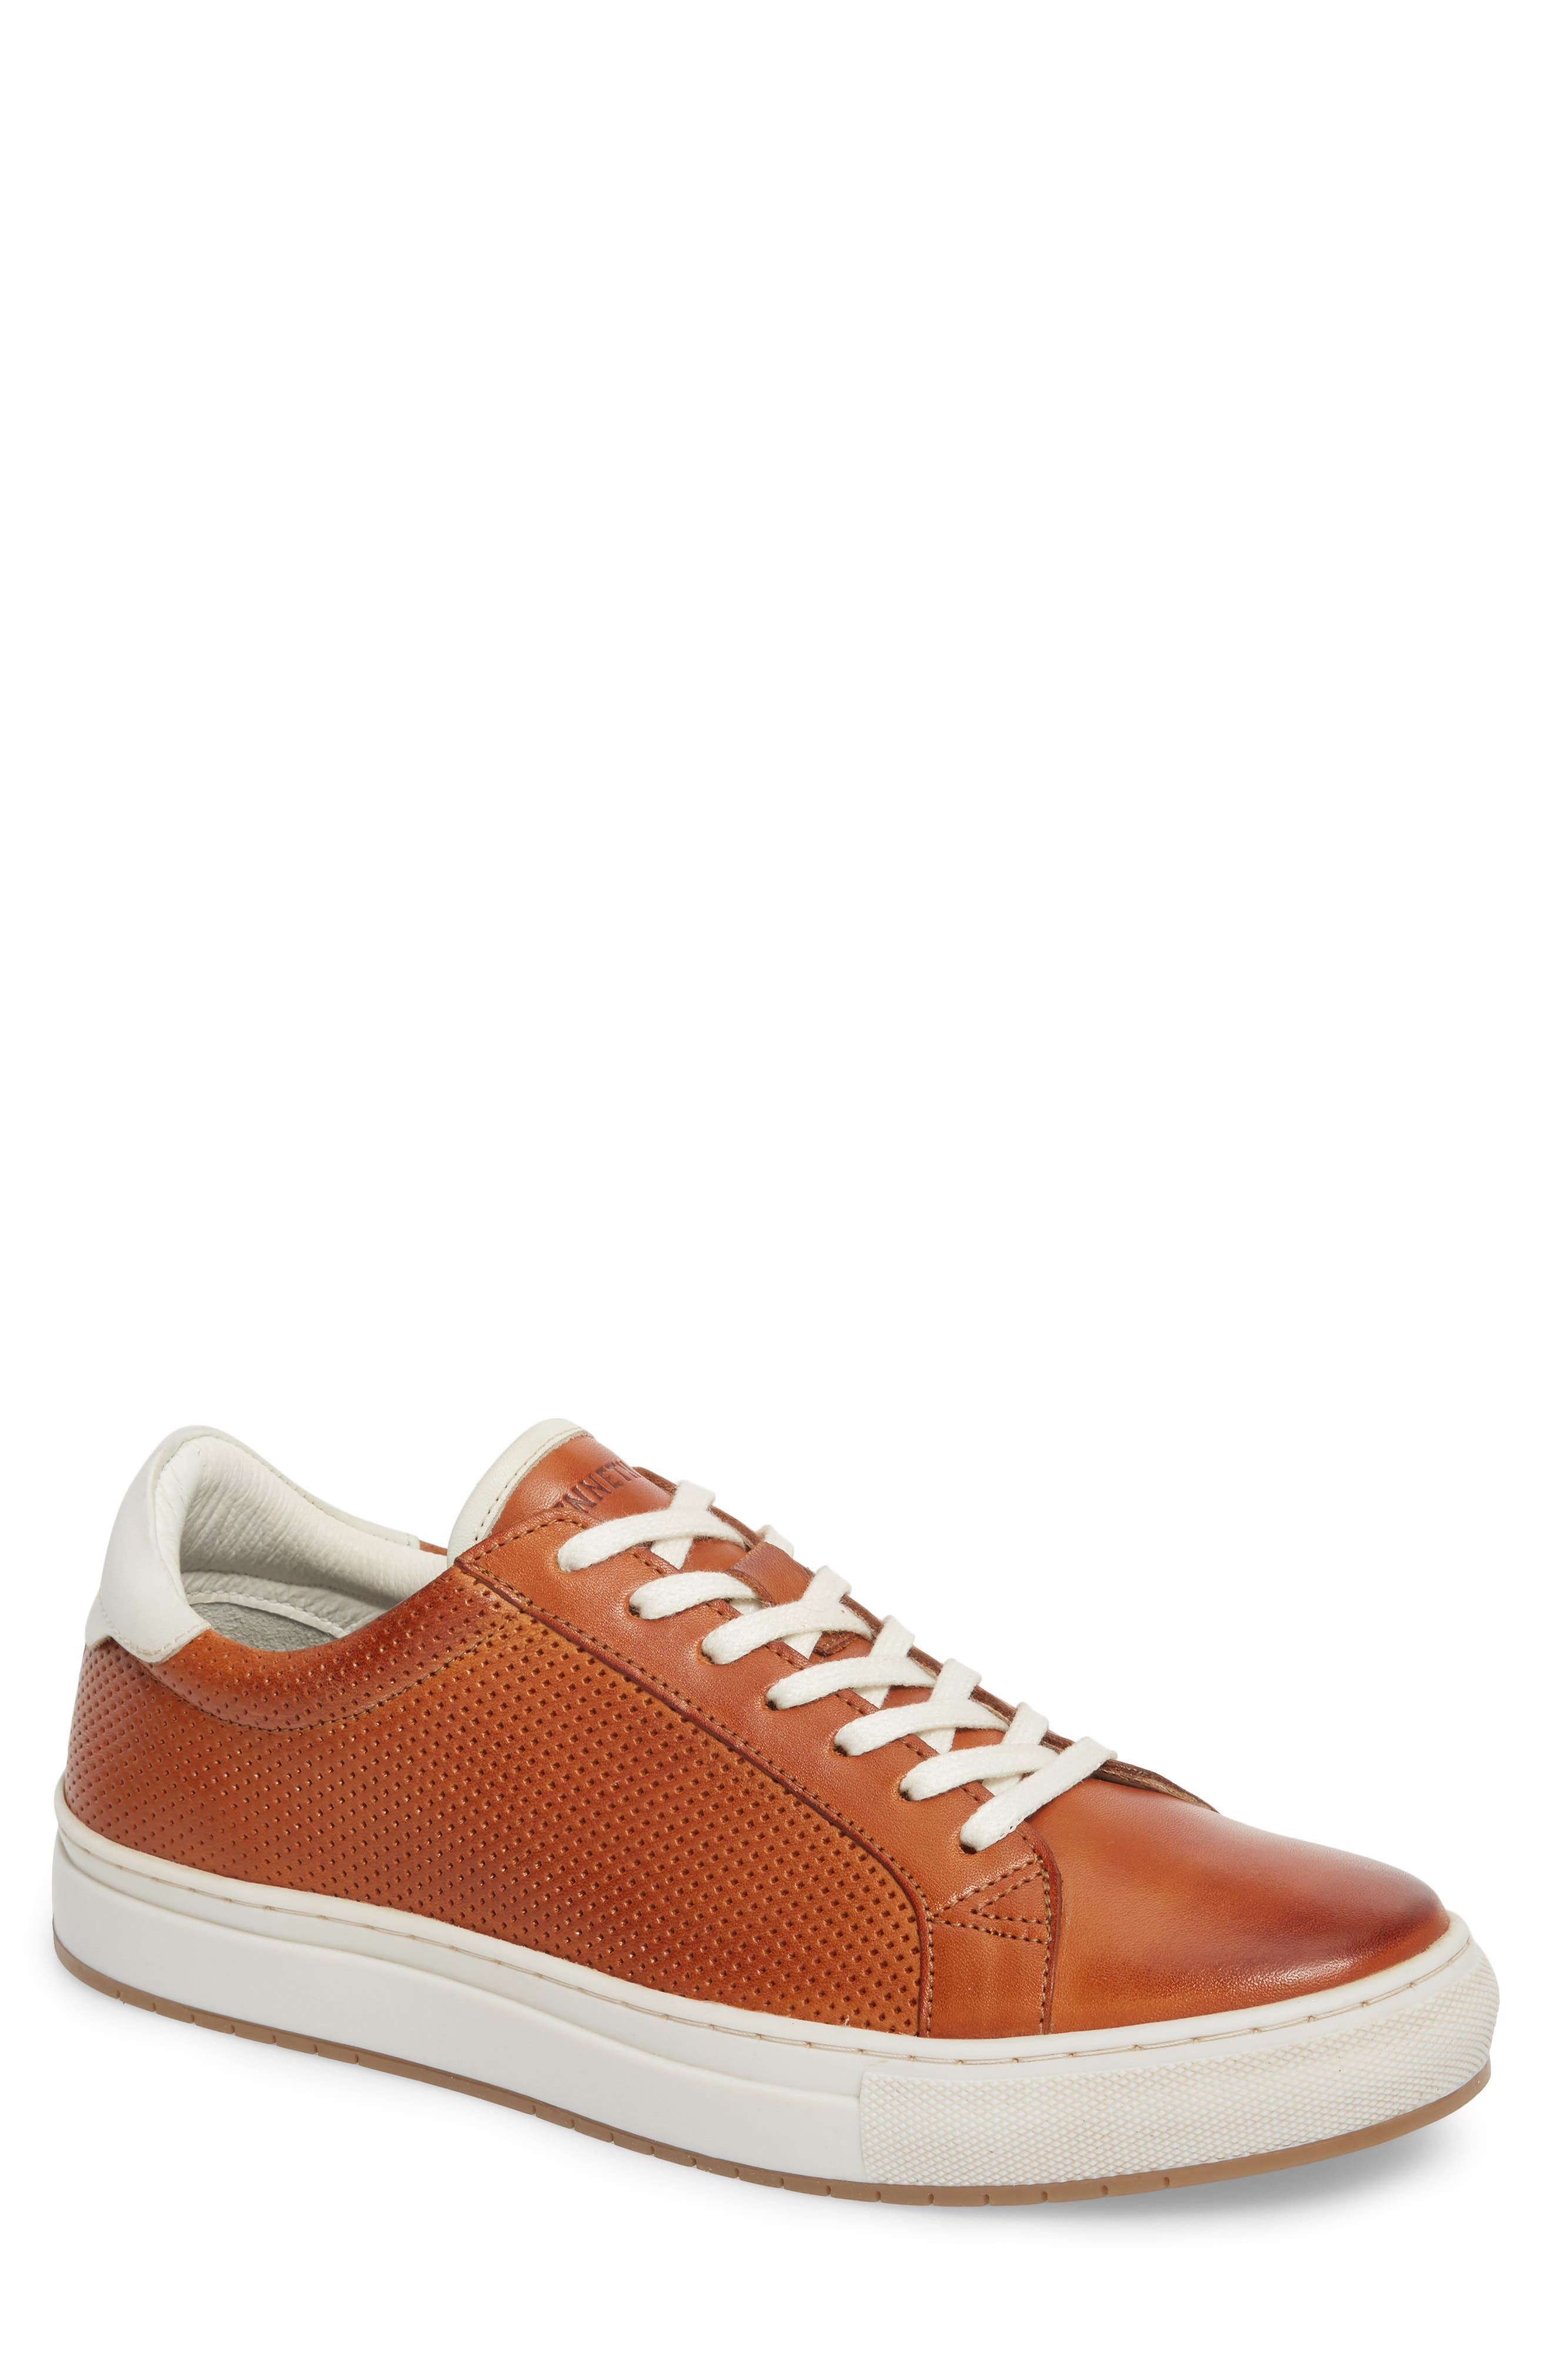 Don Embossed Lace-Up Sneaker,                             Main thumbnail 1, color,                             Cognac Leather